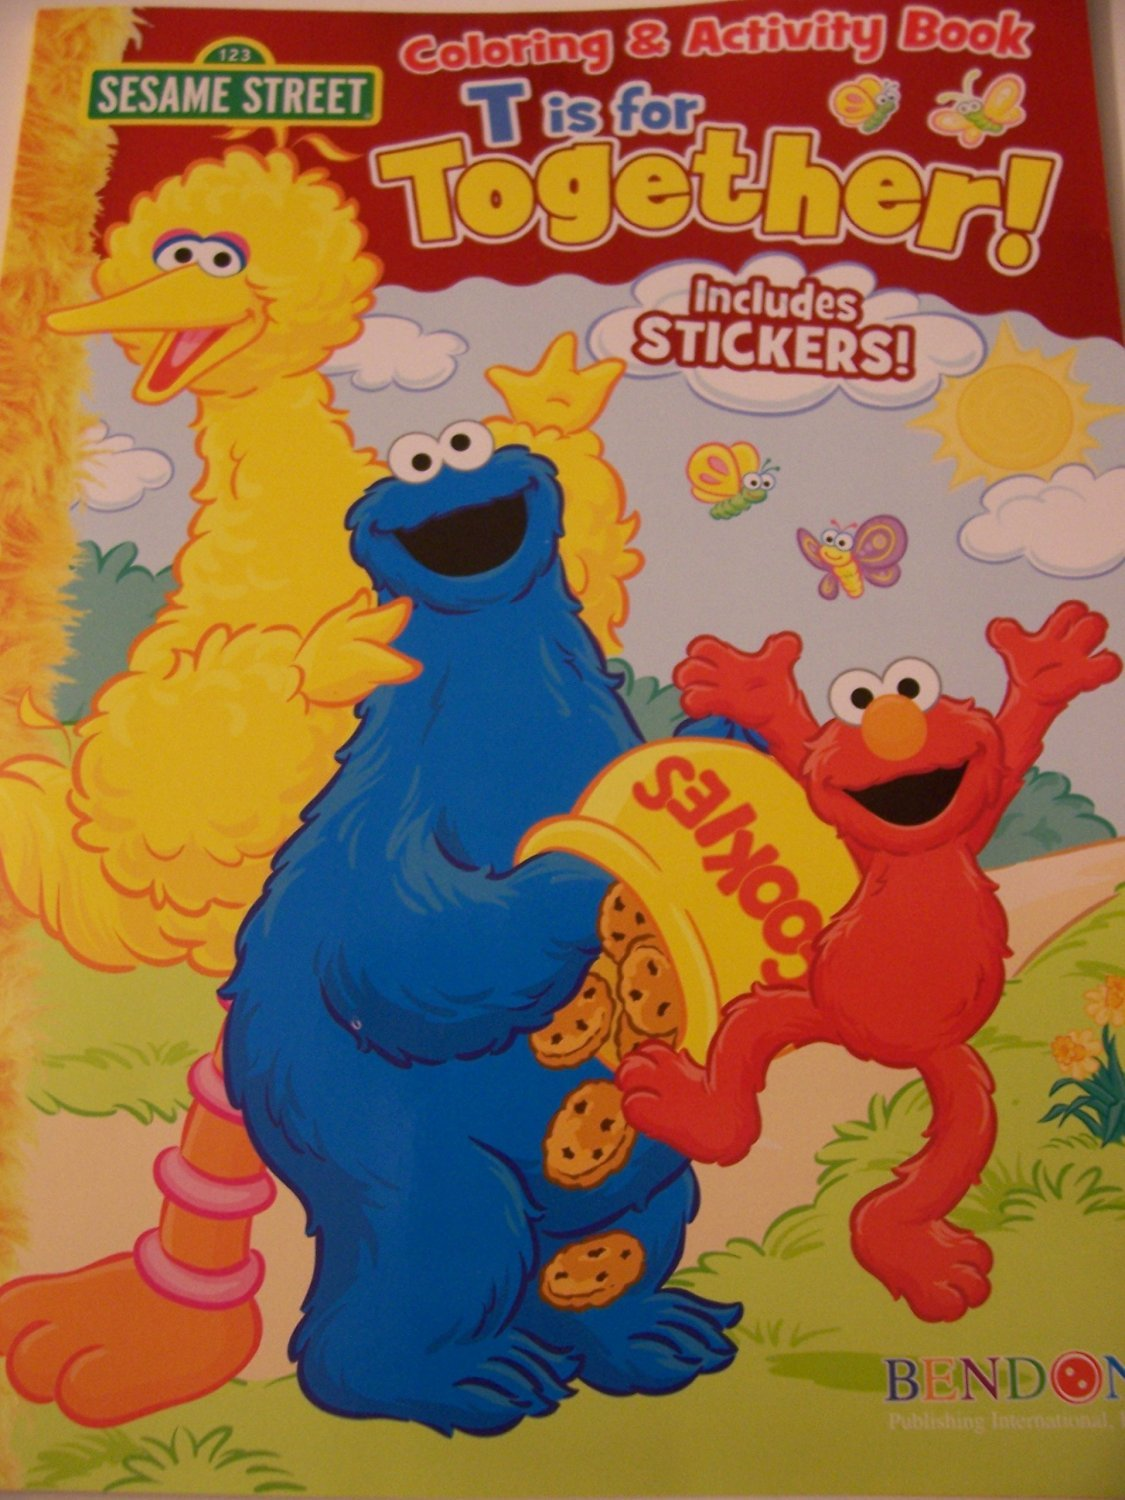 Sesame Street Coloring & Activity Book with Stickers ~ T is for Together!